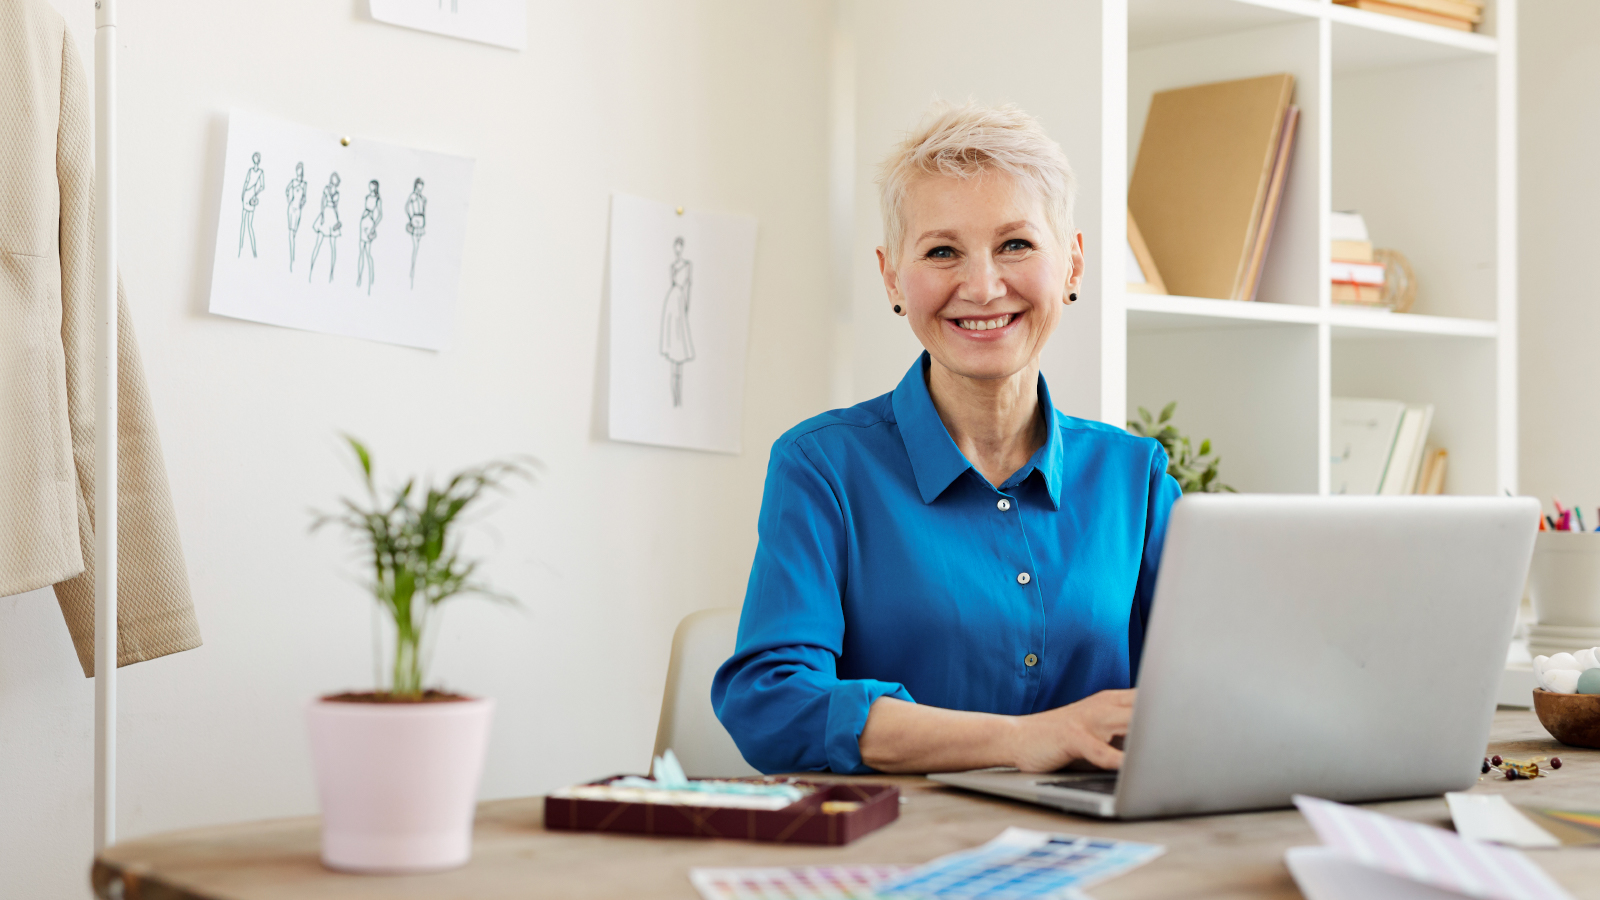 Woman working at desk on laptop